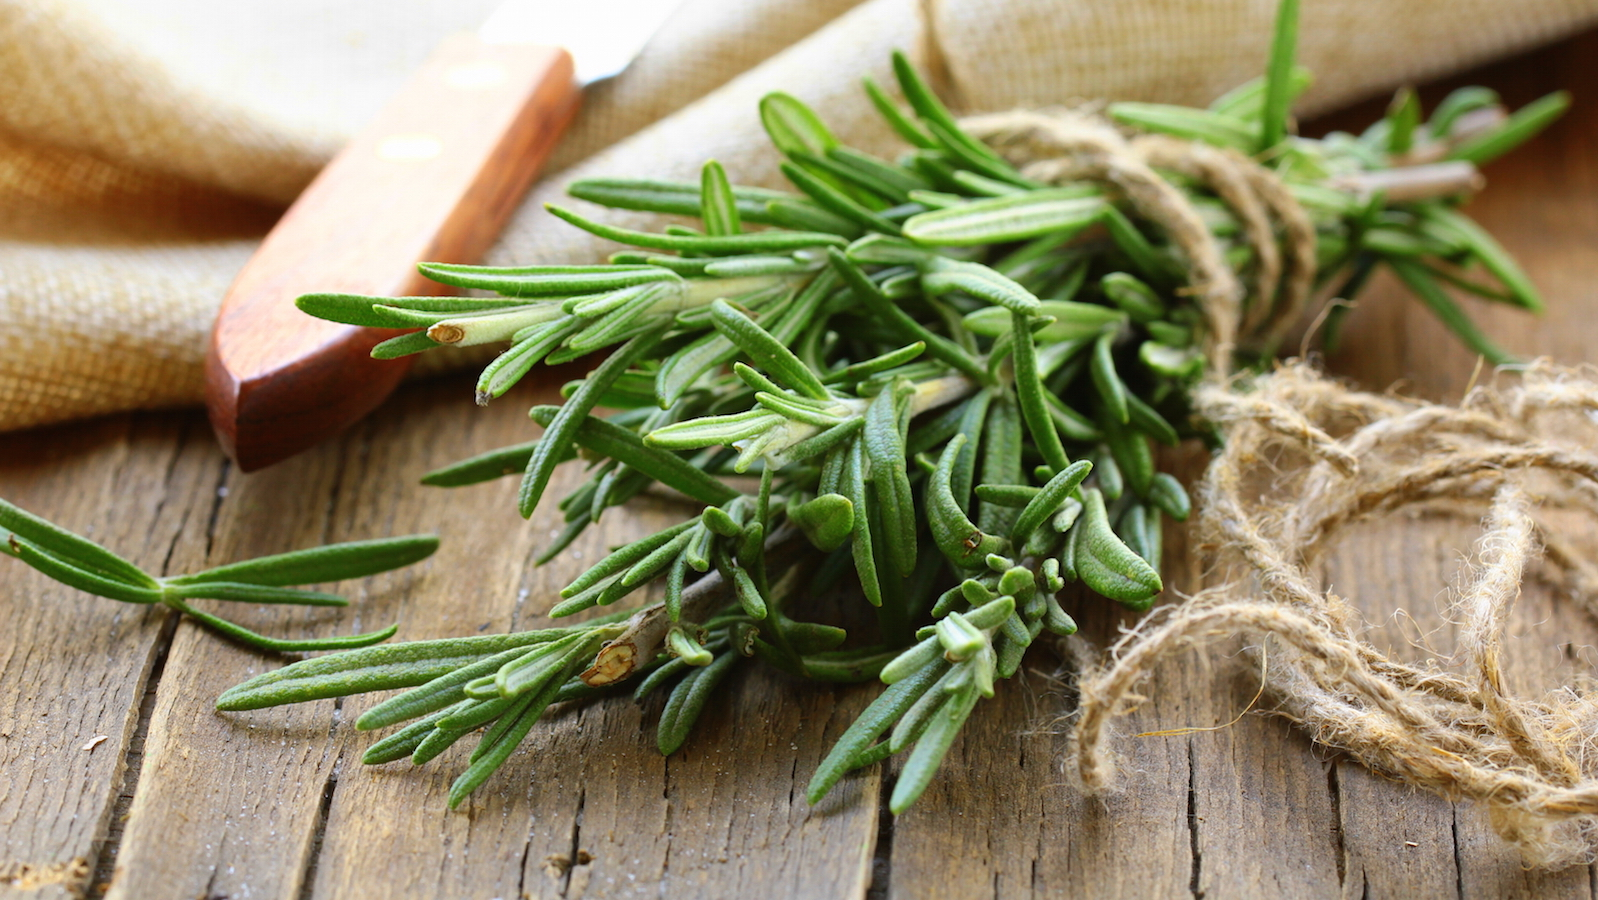 How much would it cost for Rosemary?